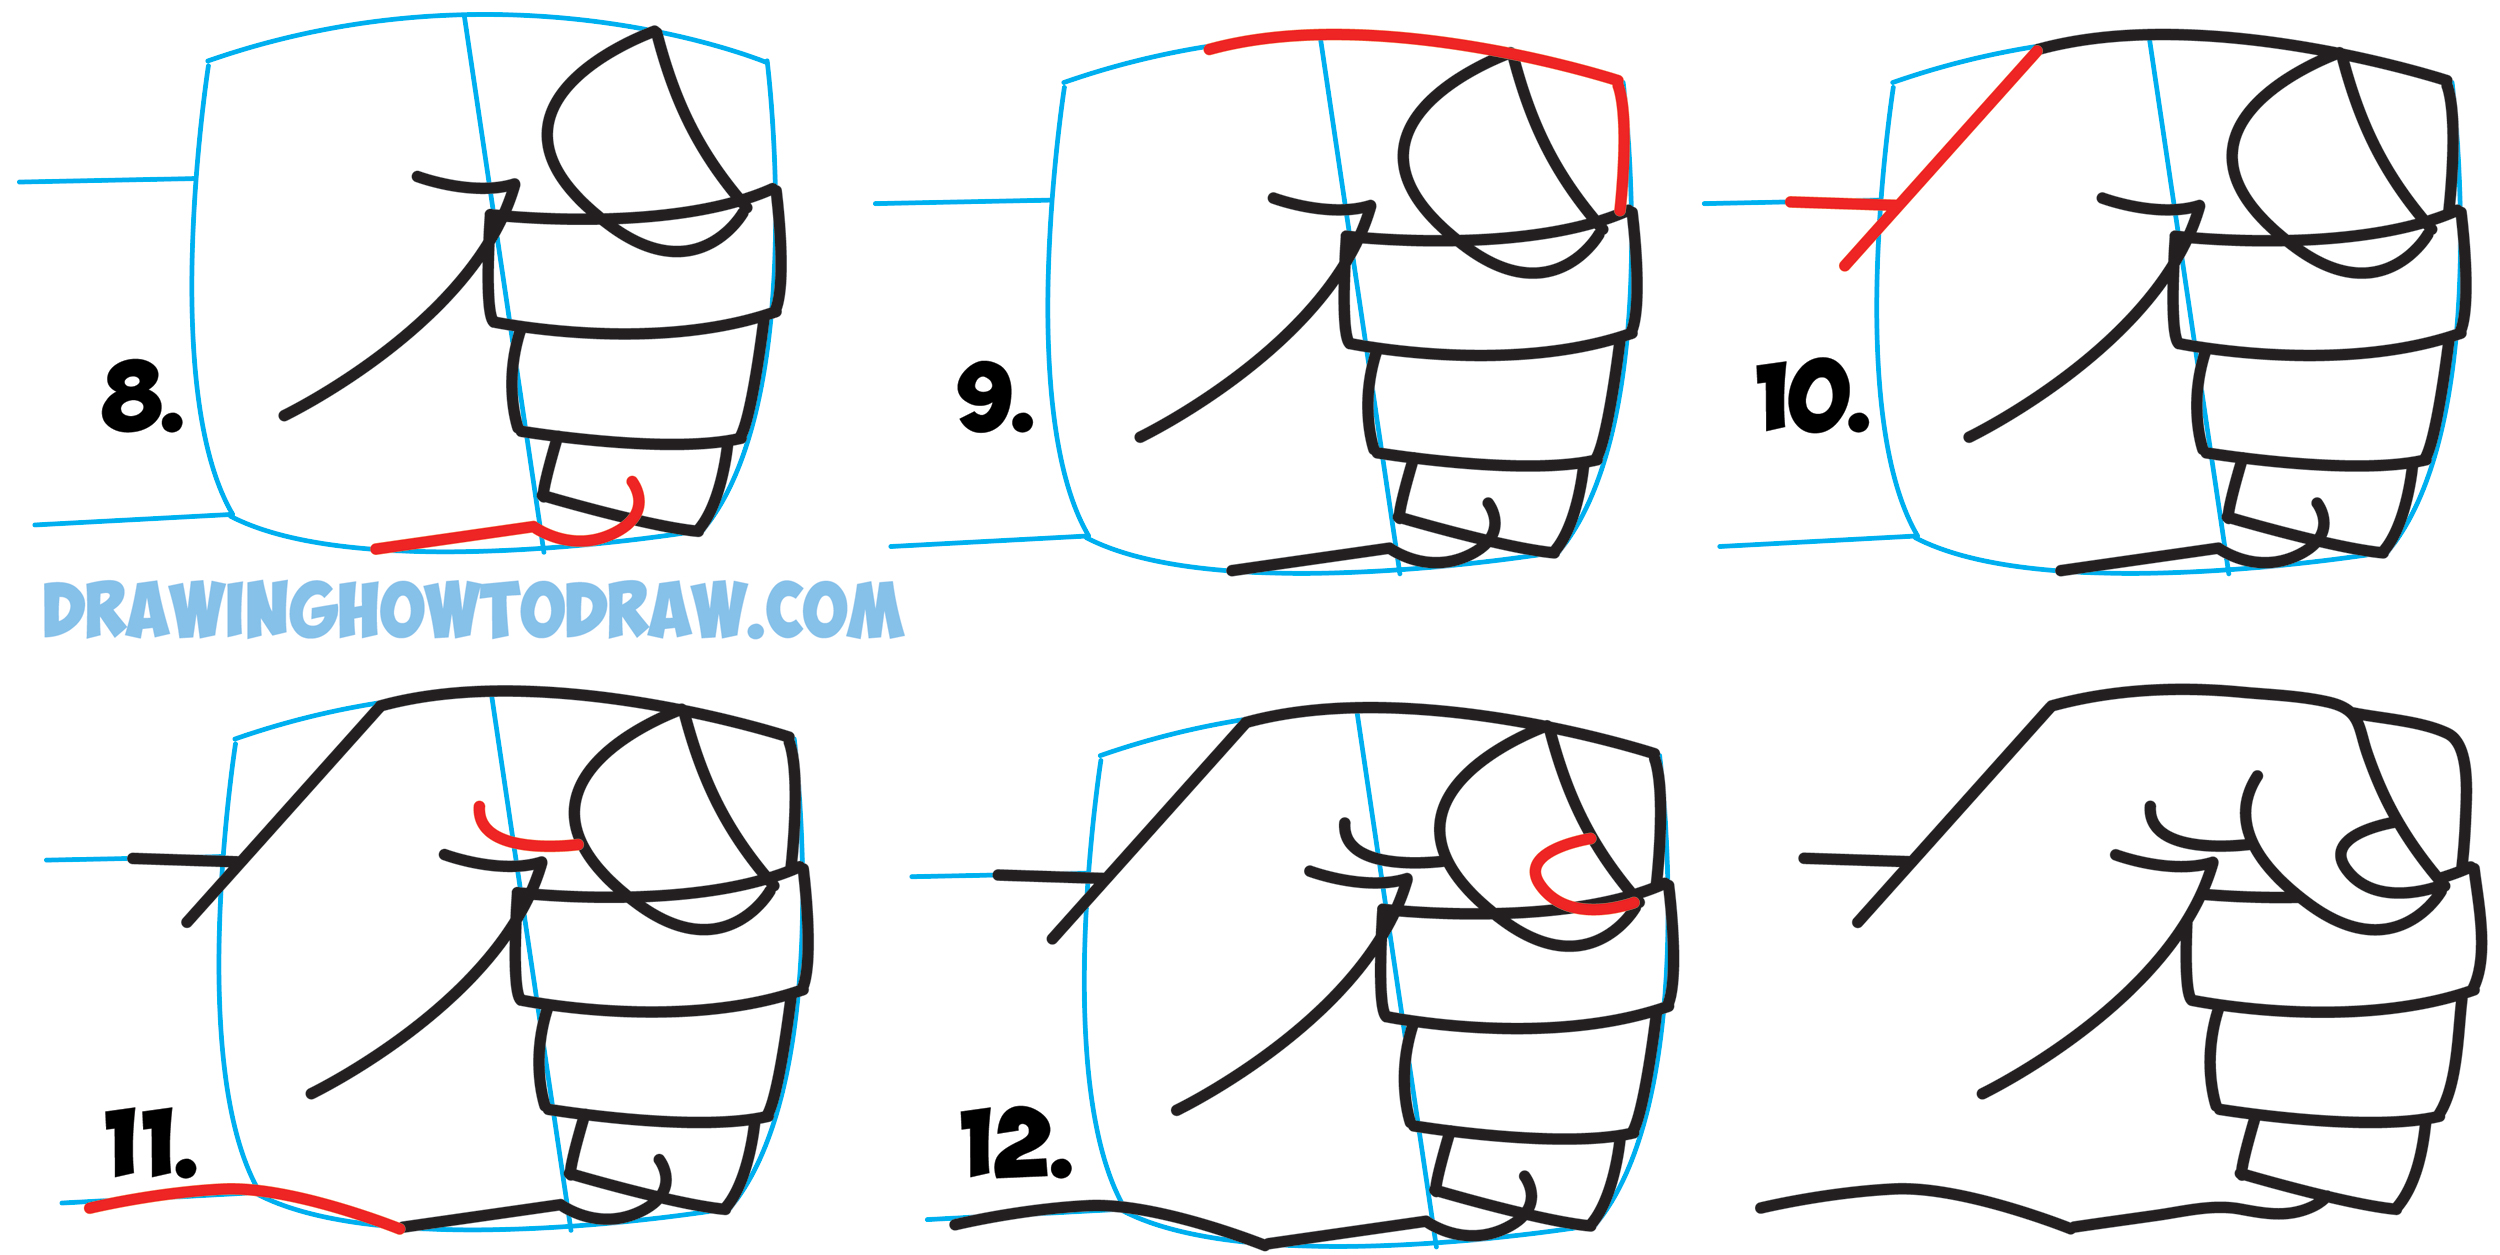 How to draw fists side view clenched drawing cartoon for Learn to draw cartoons step by step lessons